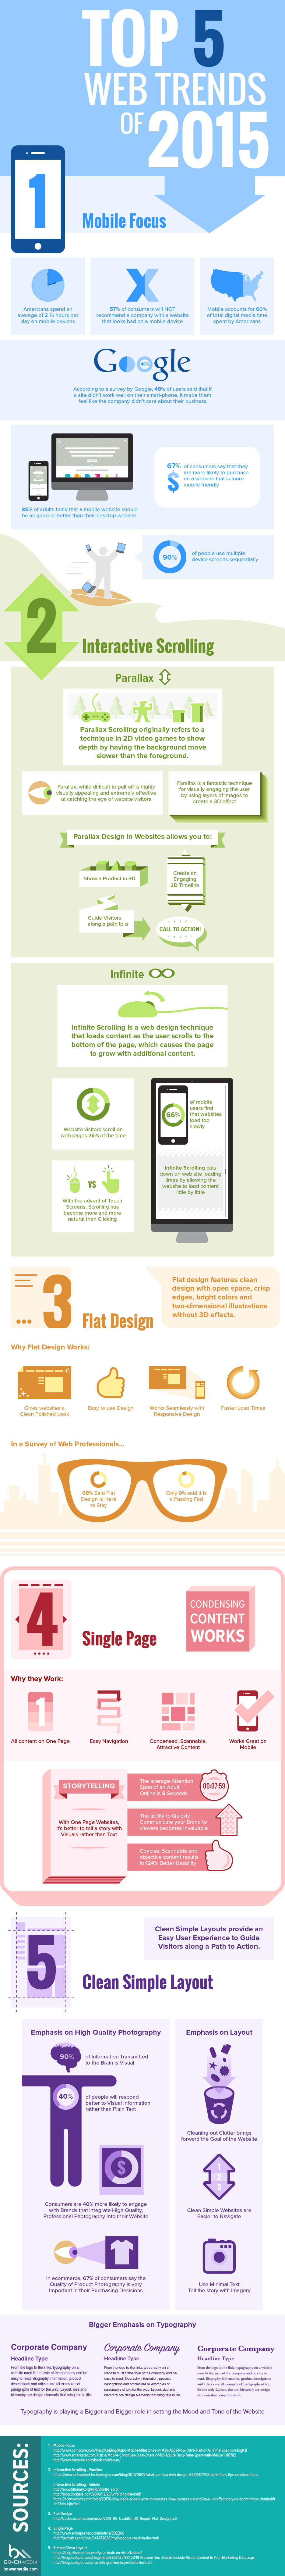 Top 5 Web Design Trends For 2015